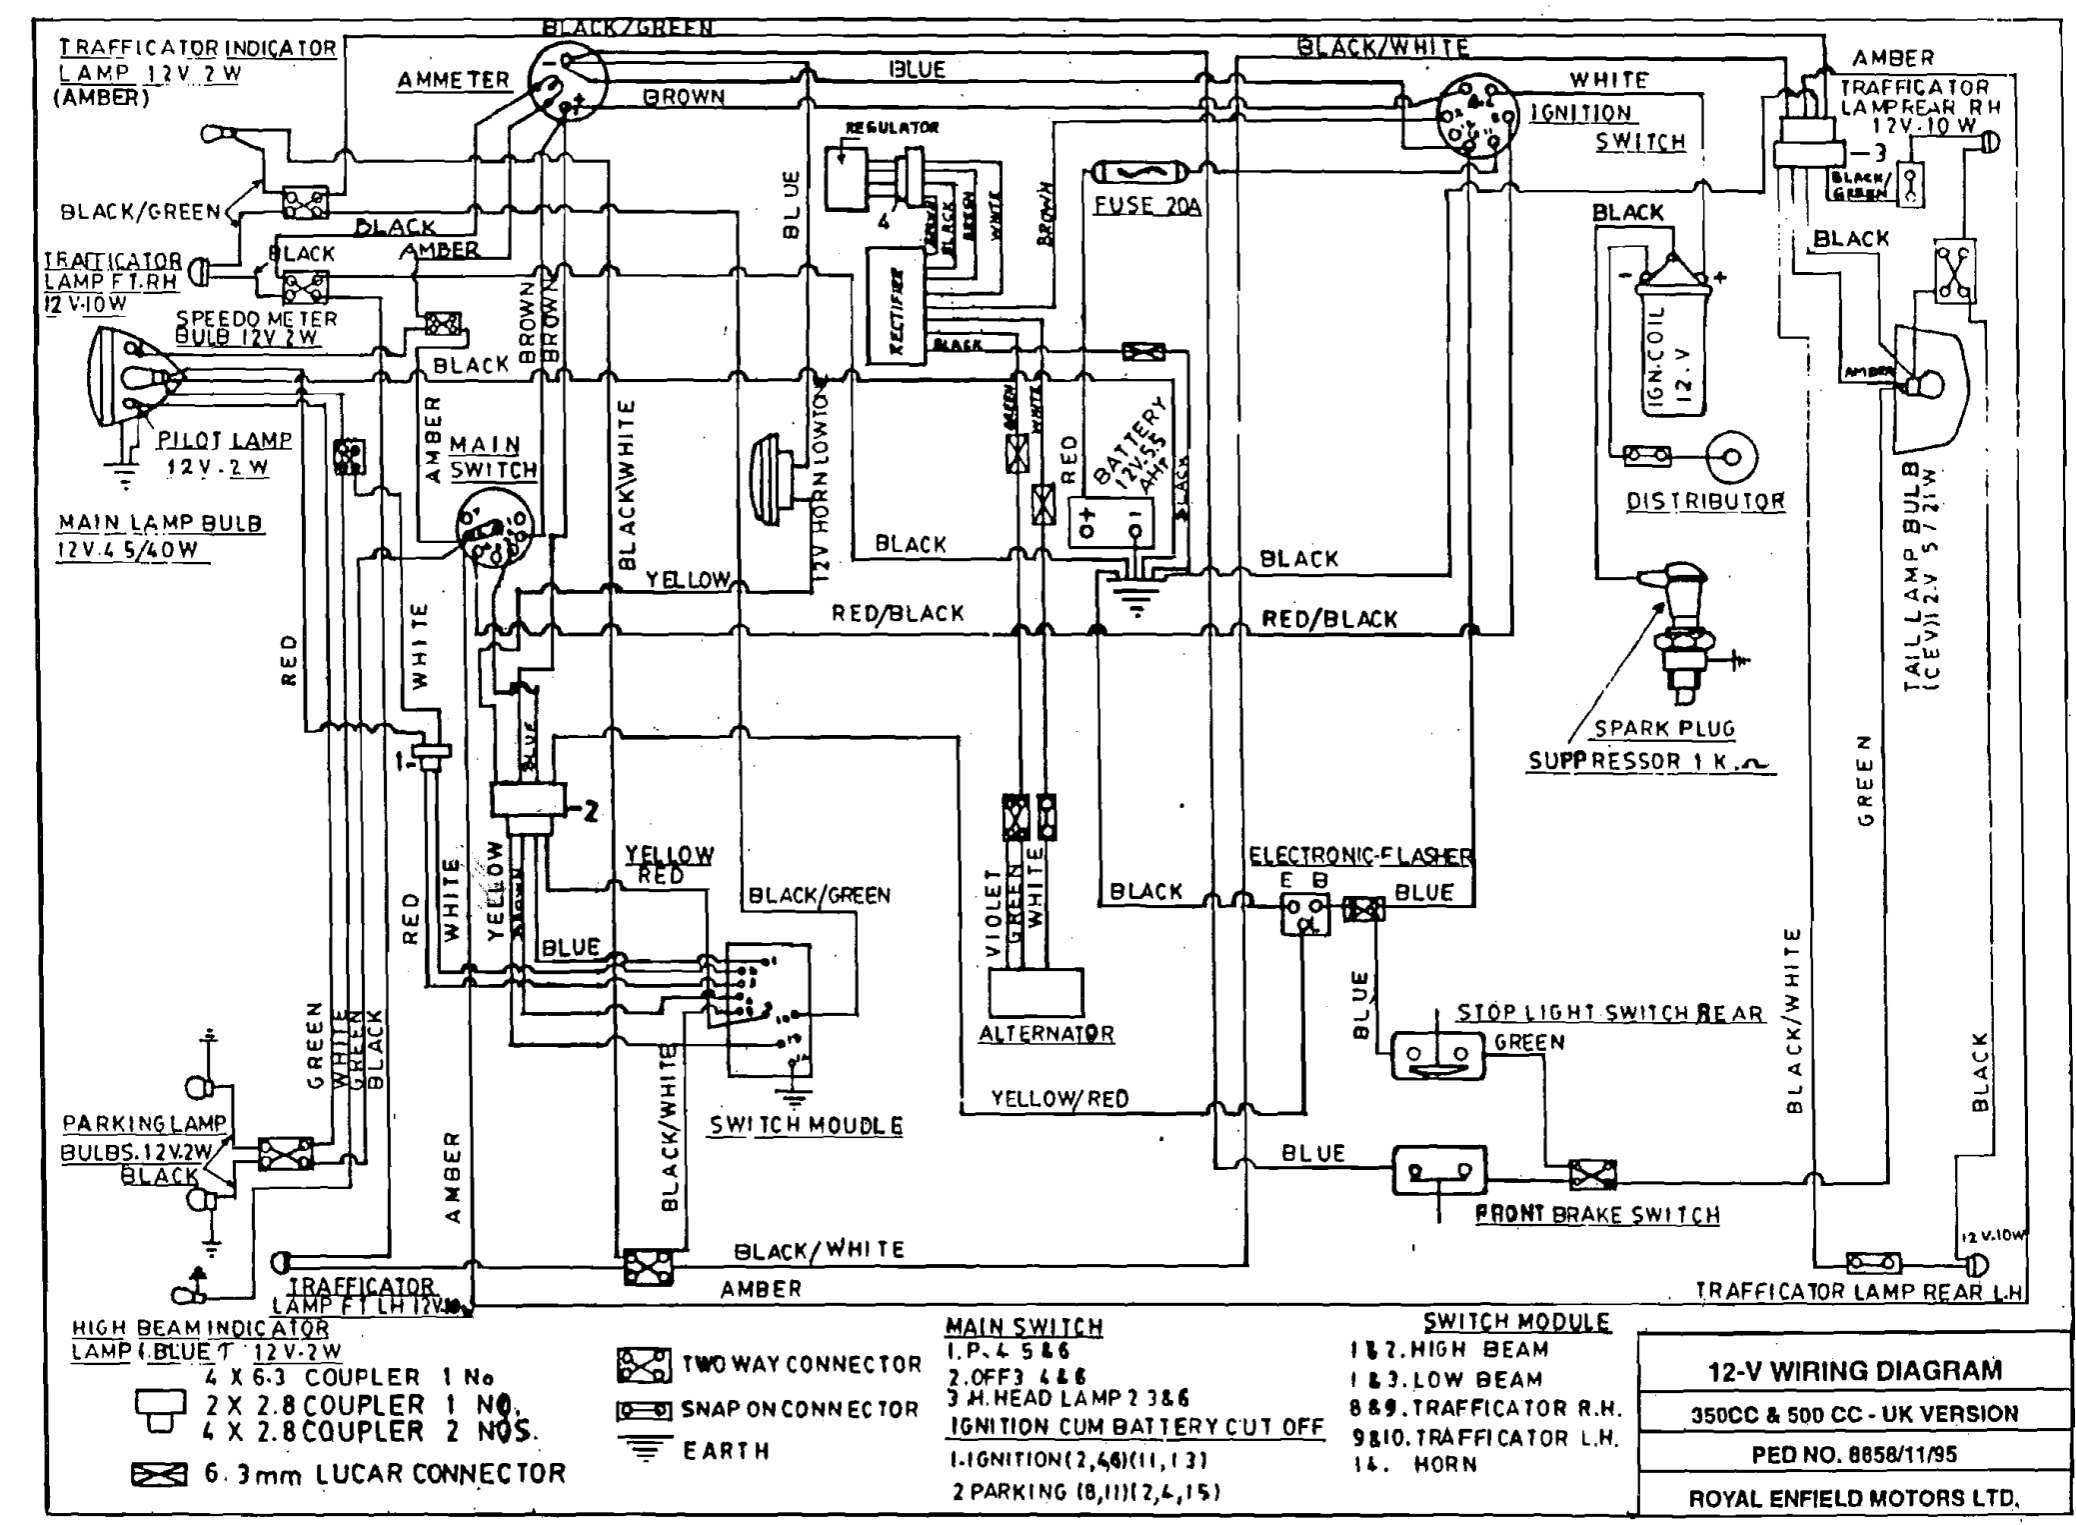 wiring_2_royal_enfield_350 royal enfield bullet 350 wiring diagram efcaviation com royal enfield thunderbird 350 wiring diagram at reclaimingppi.co